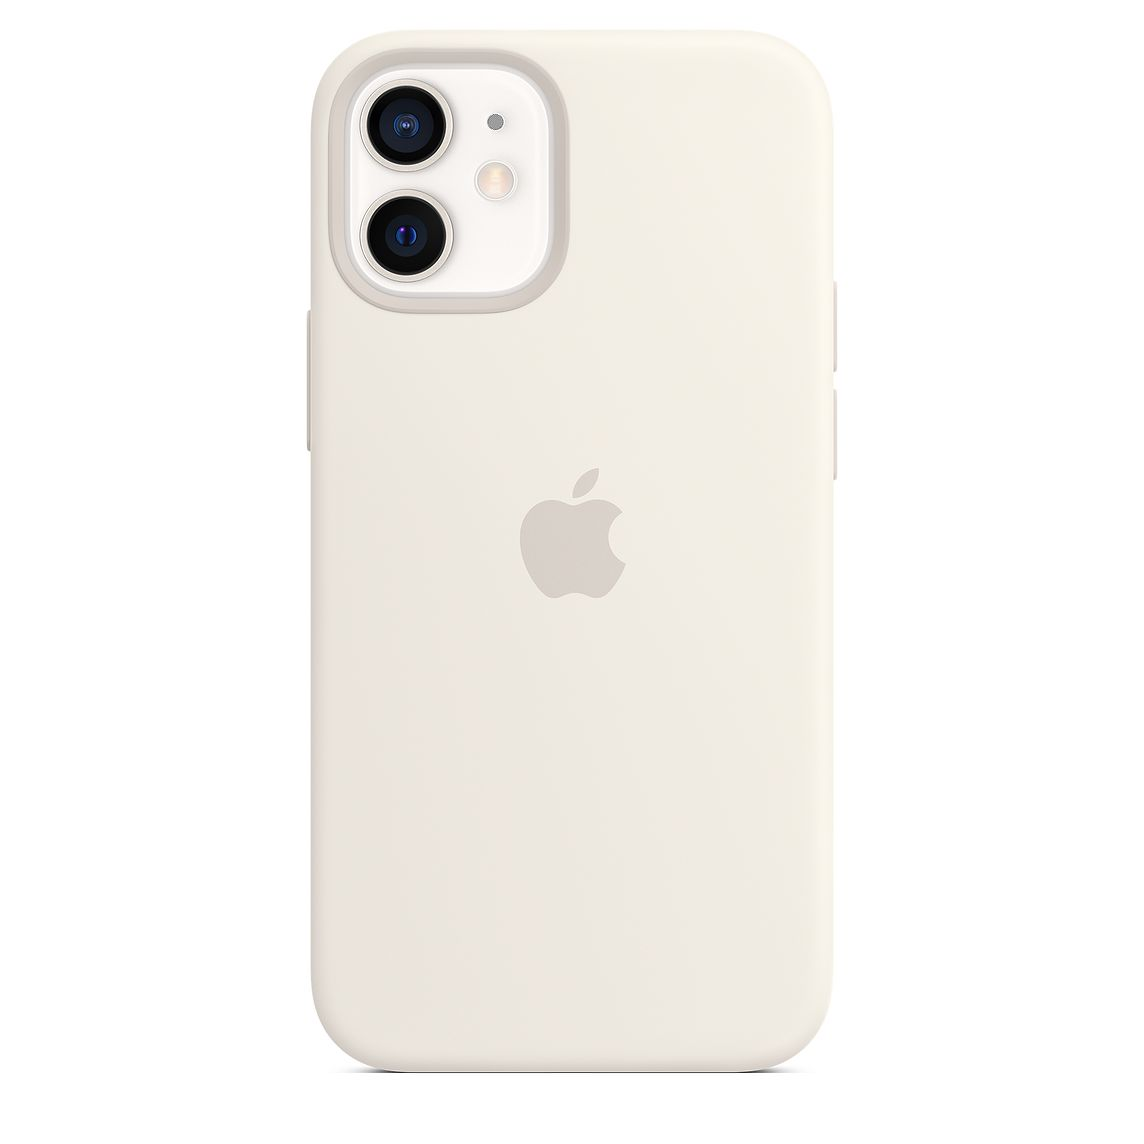 - iPhone 12 mini Silicone Case with MagSafe / Blanco 2